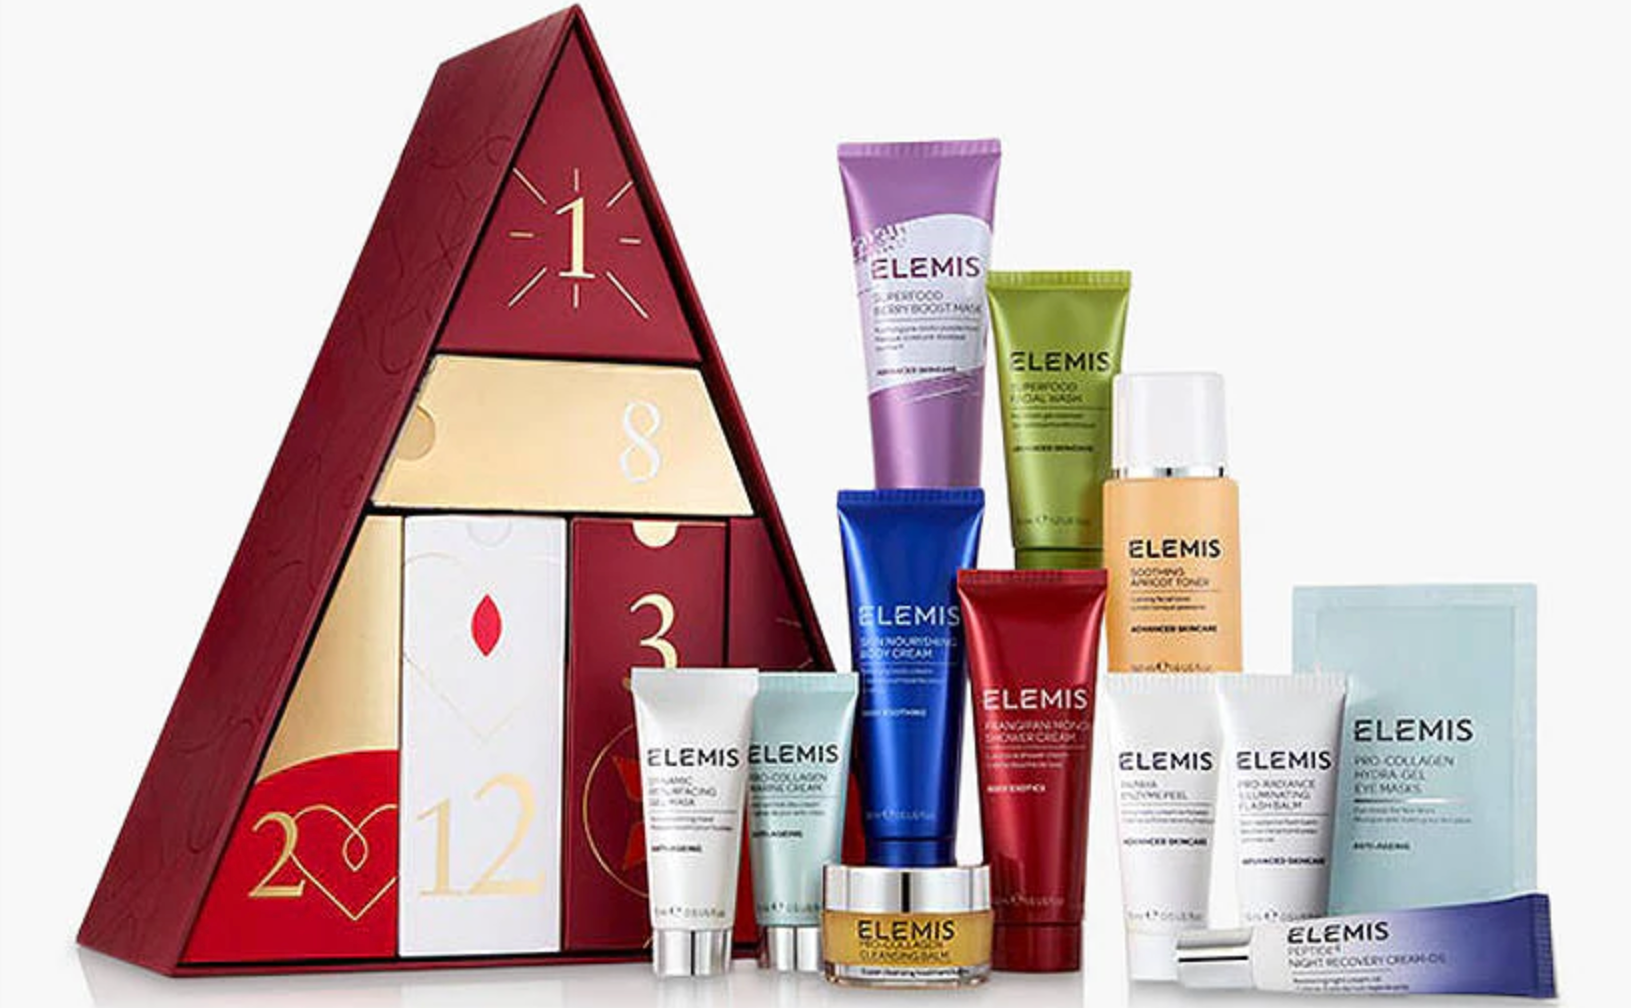 ELEMIS 12 days advent calendar 2019